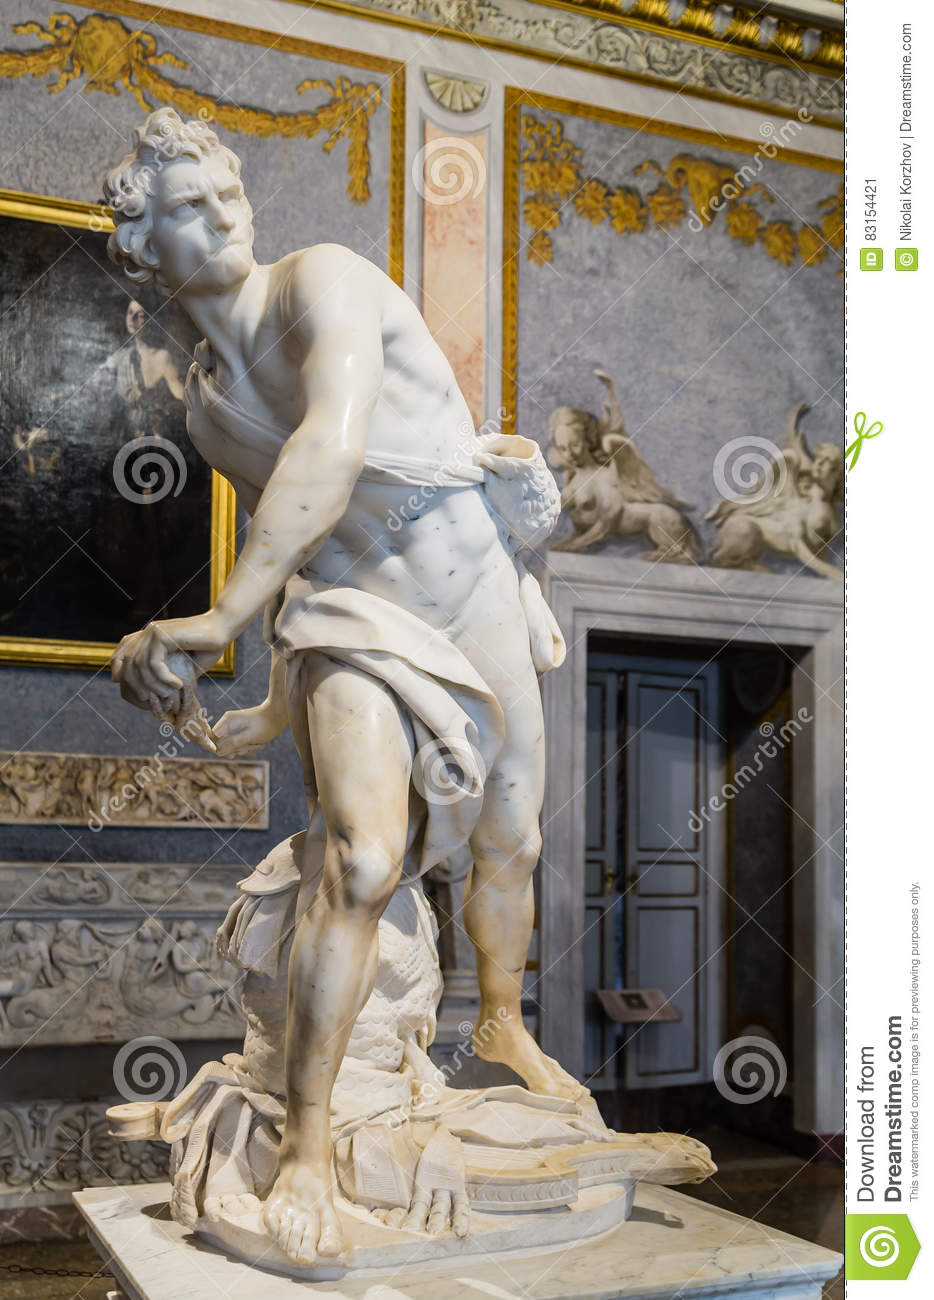 Marble sculpture David by Gian Lorenzo Bernini in Galleria Borghese, Rome